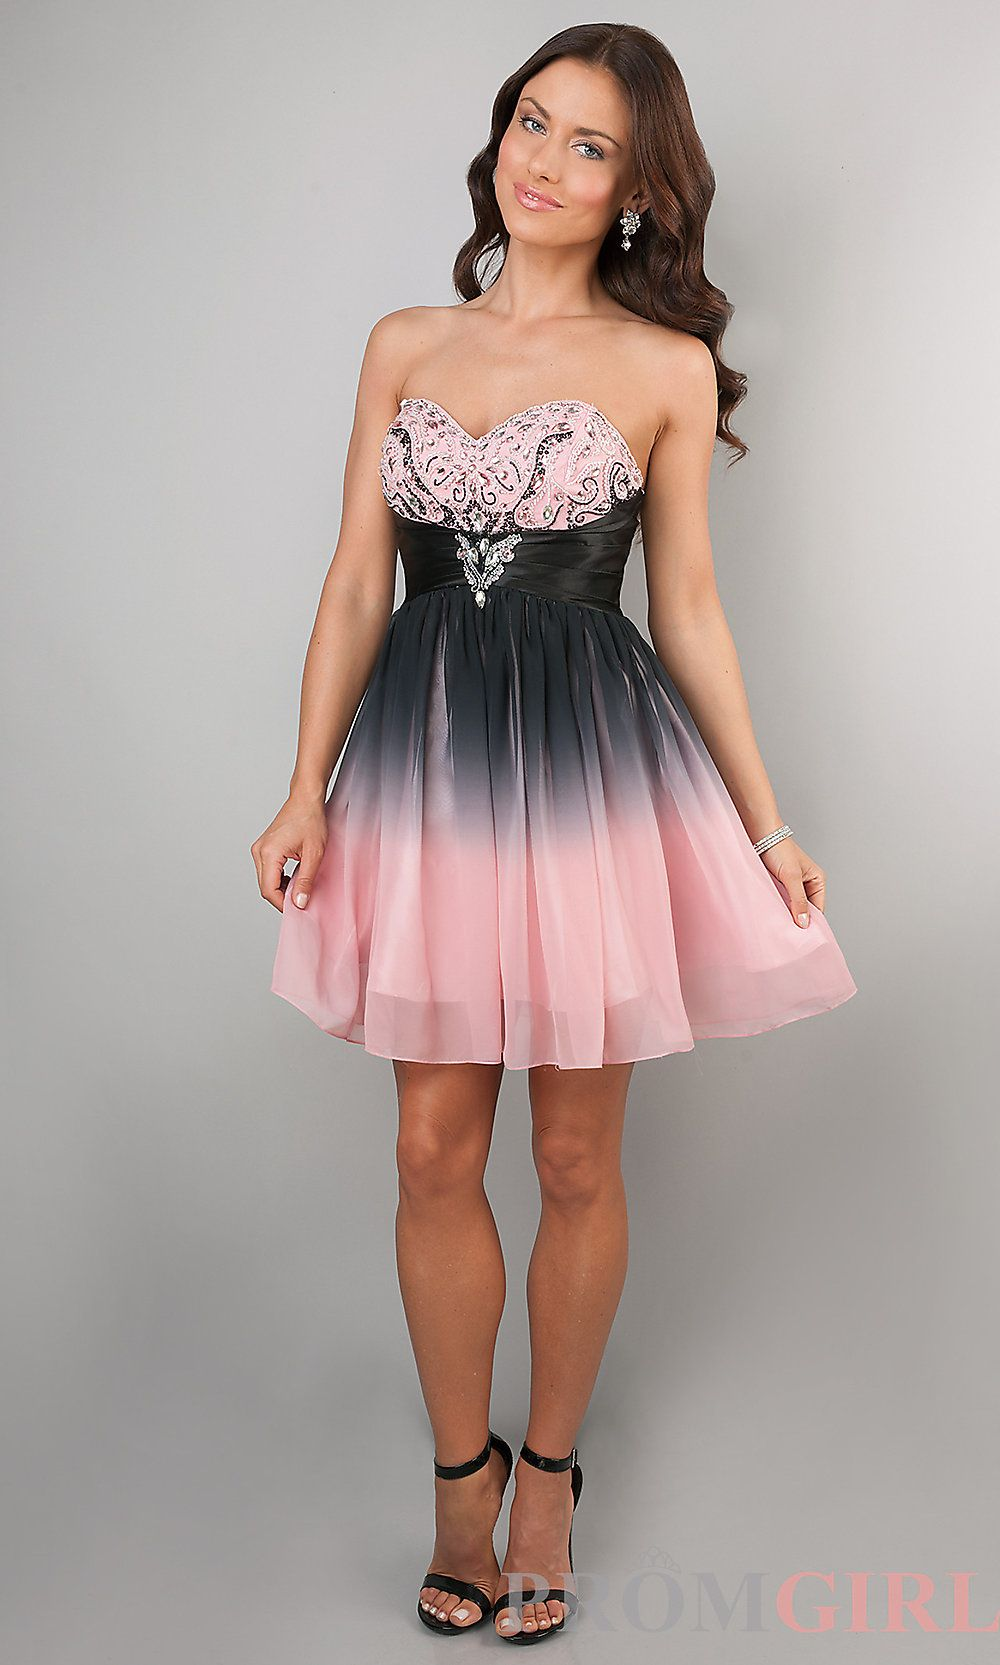 Strapless Junior Prom Dress Short Ombre Party Dresses Promgirl